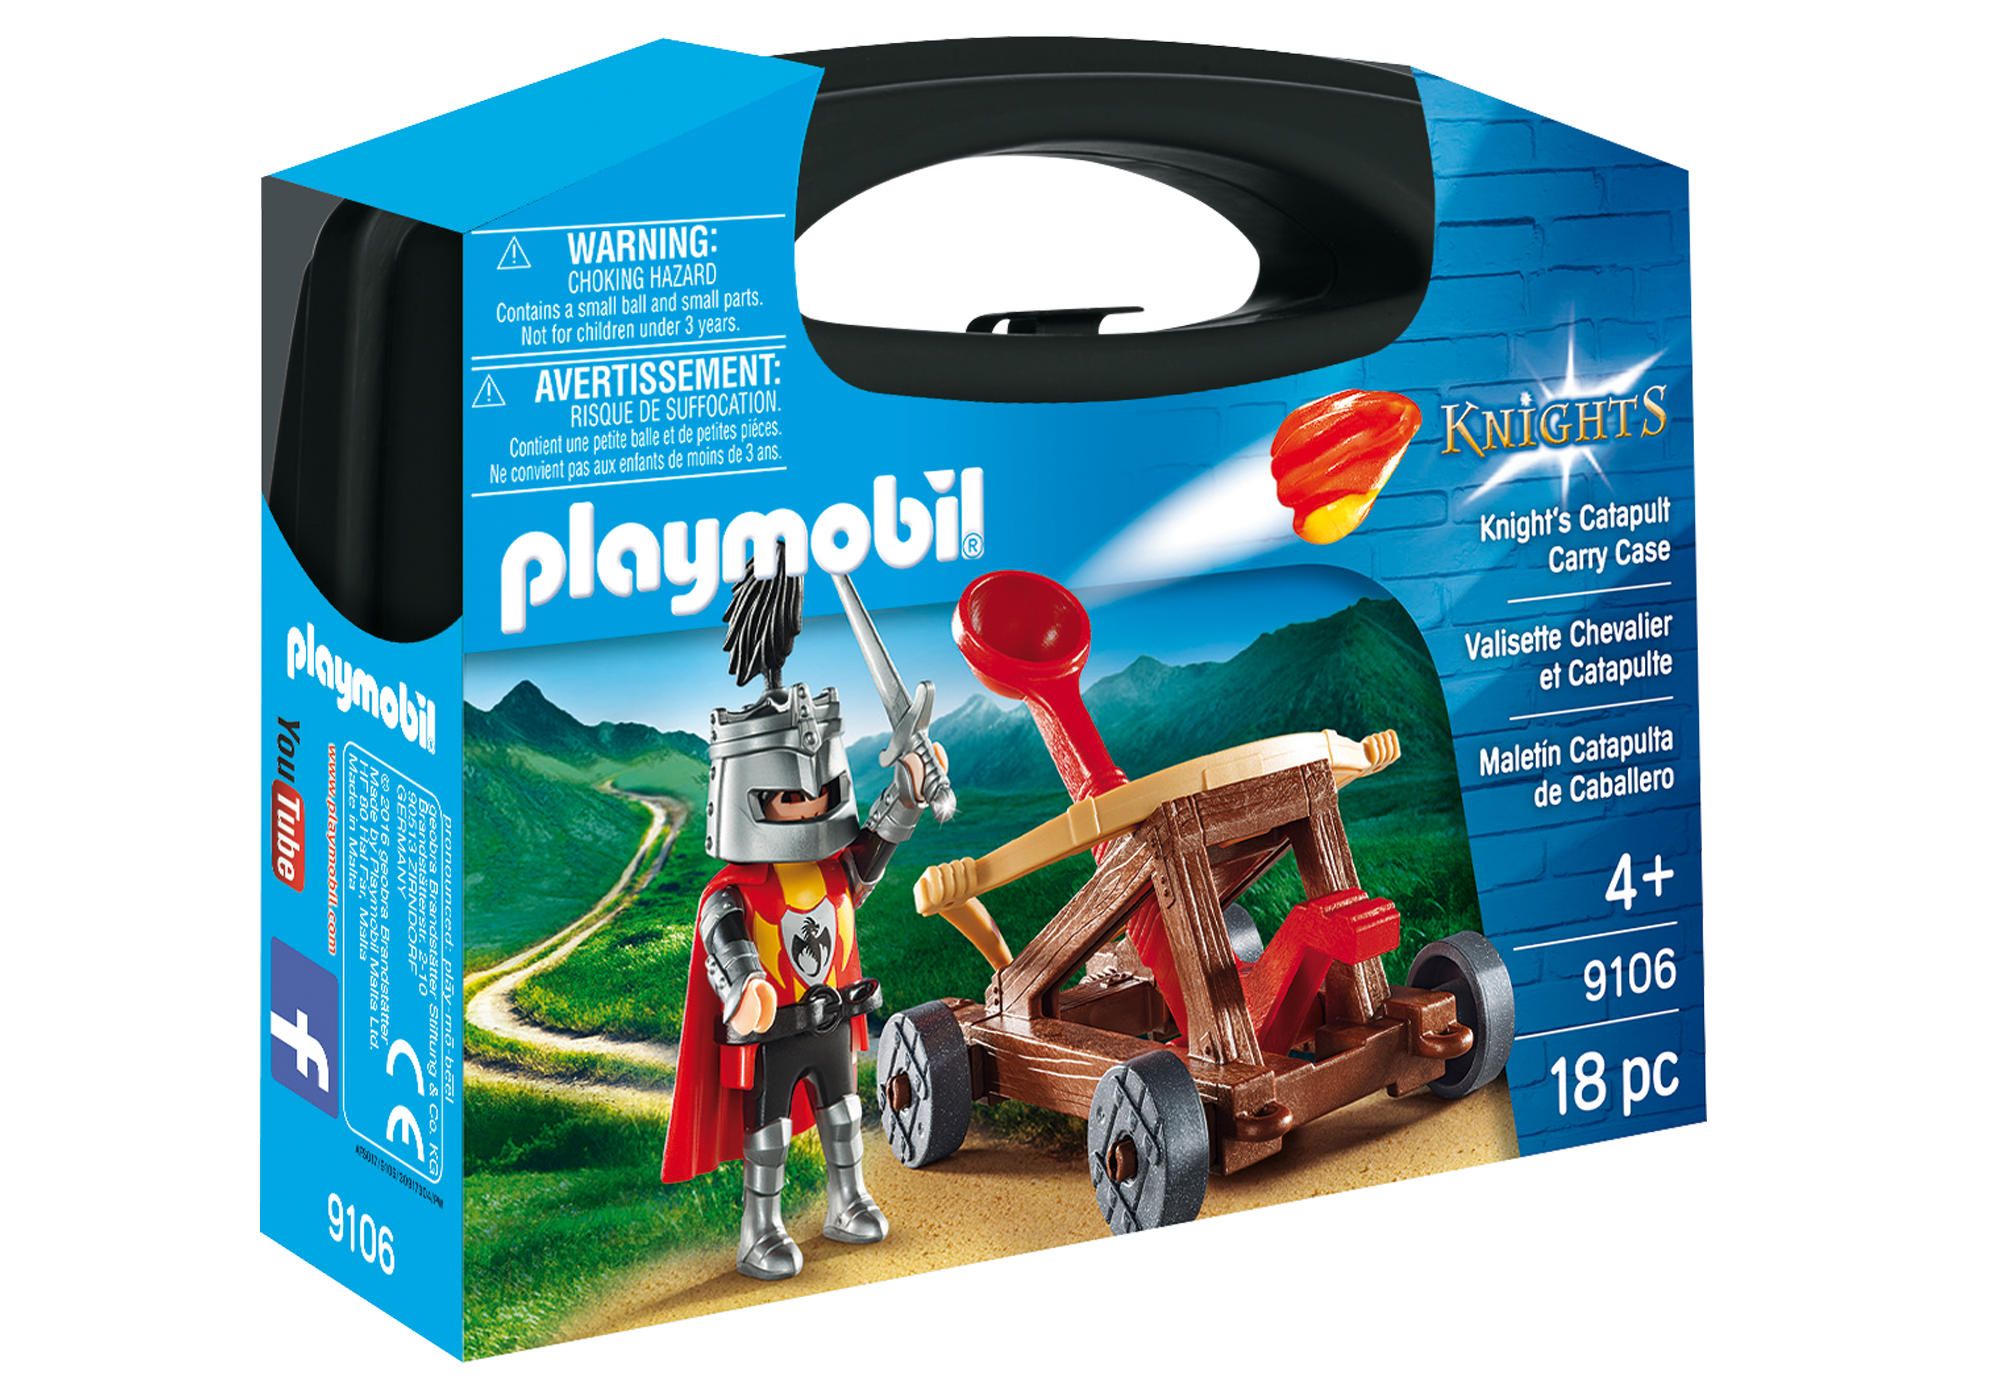 http://media.playmobil.com/i/playmobil/9106_product_box_front/Knight's Catapult Carry Case